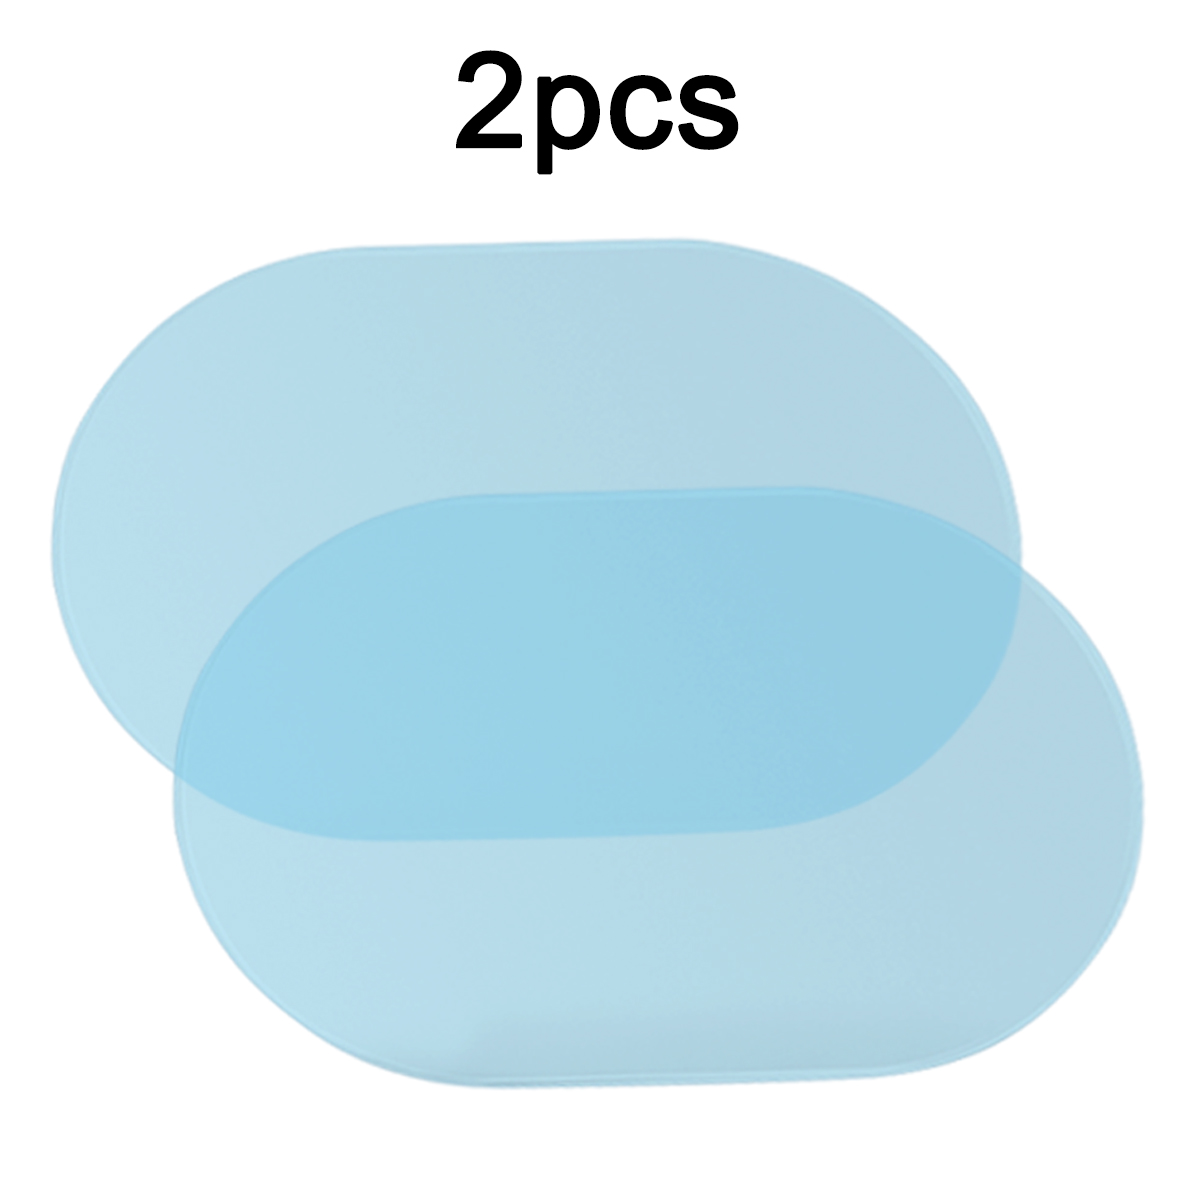 New Arrival 2Pcs 100*140mm PET+Nano-coating Car Anti Water Mist Film Anti Fog Rainproof Rearview Mirror Window Protective Film